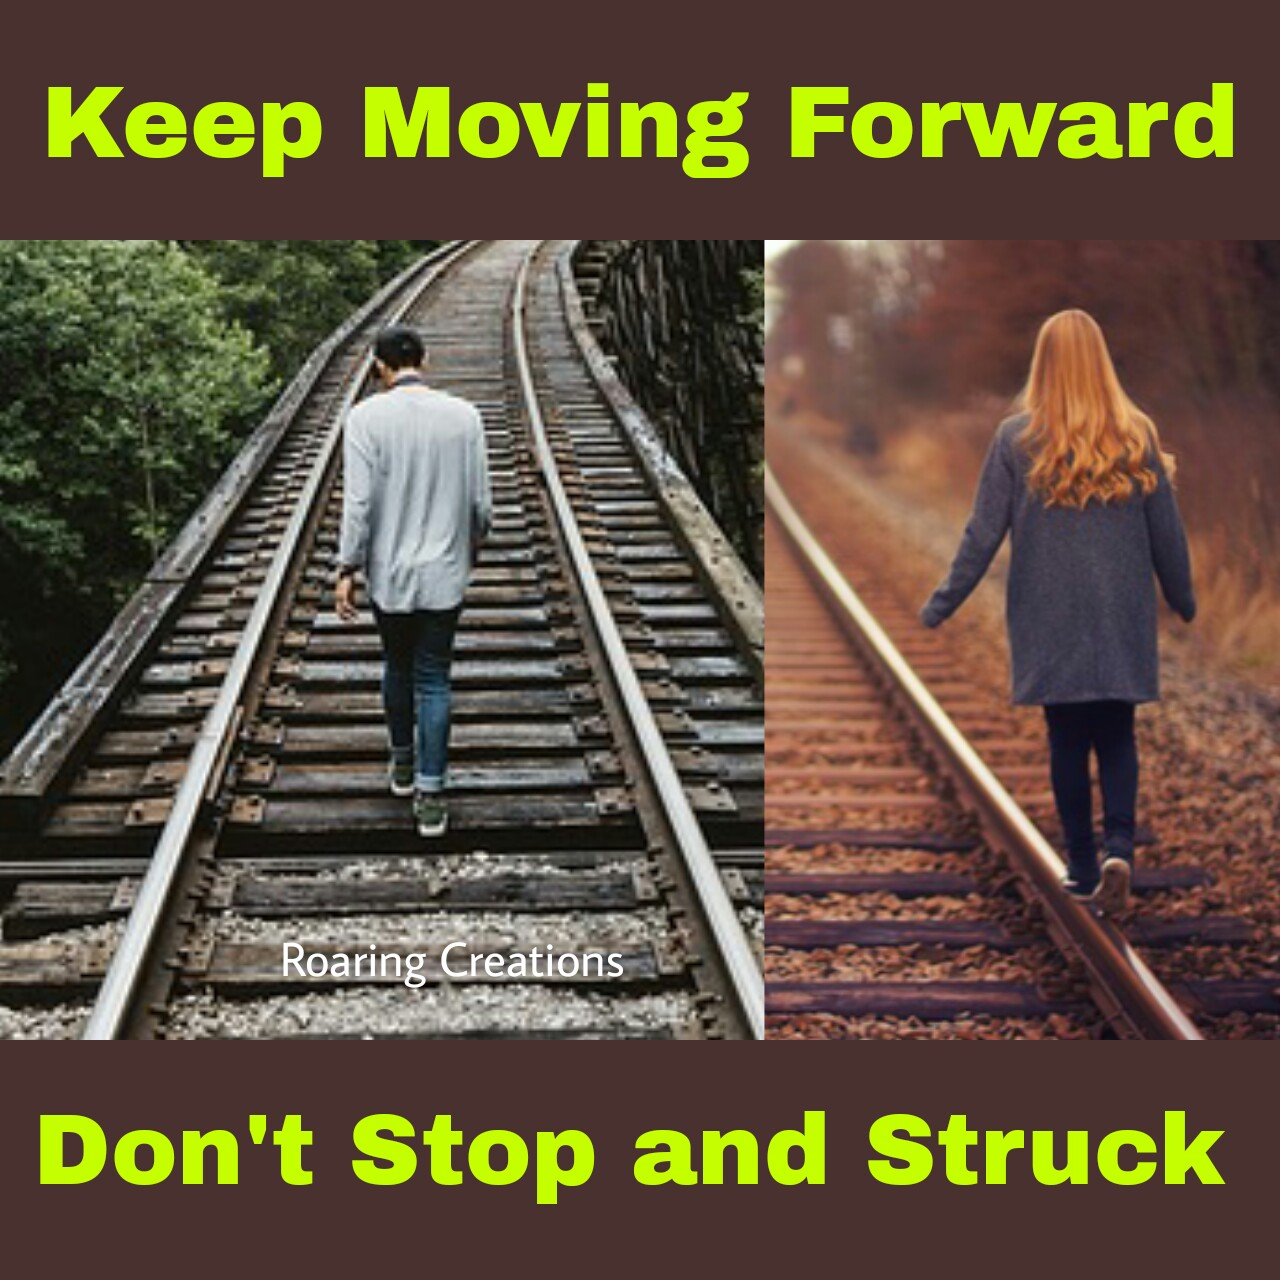 Keep moving forward Do mistakes & learn from them